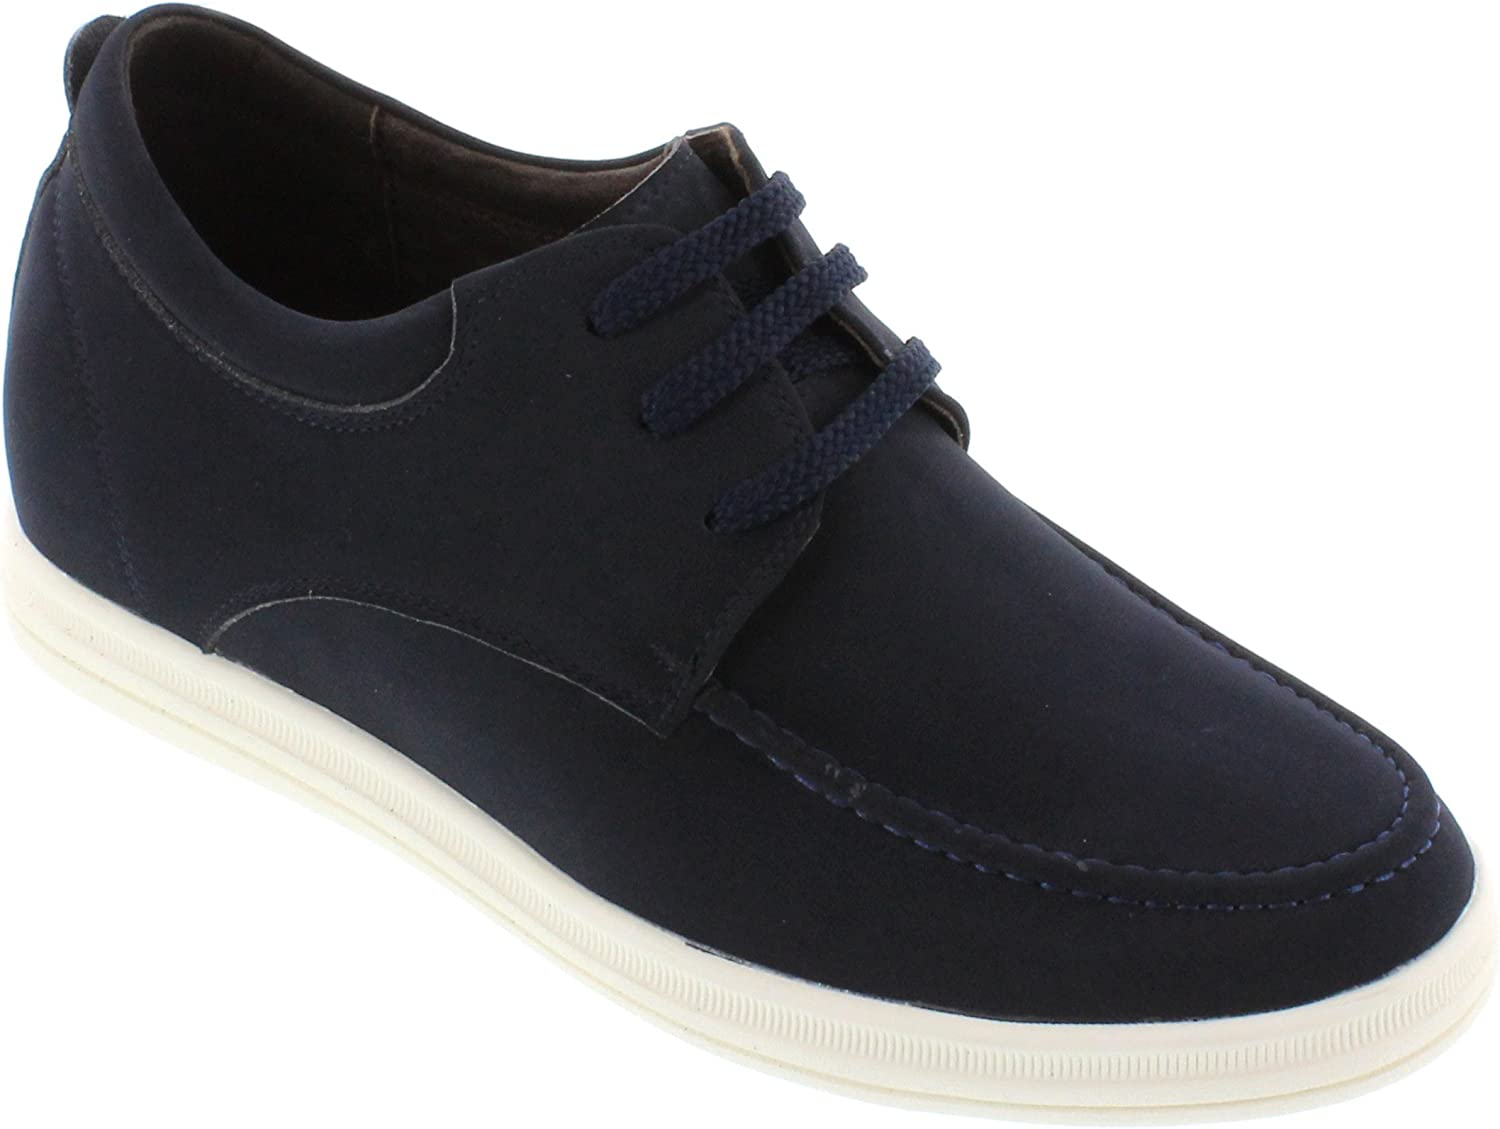 CALTO - G65182-2.6 Inches Taller - Size 11.5 D US - Height Increasing Elevator shoes - Navy bluee Lightweight